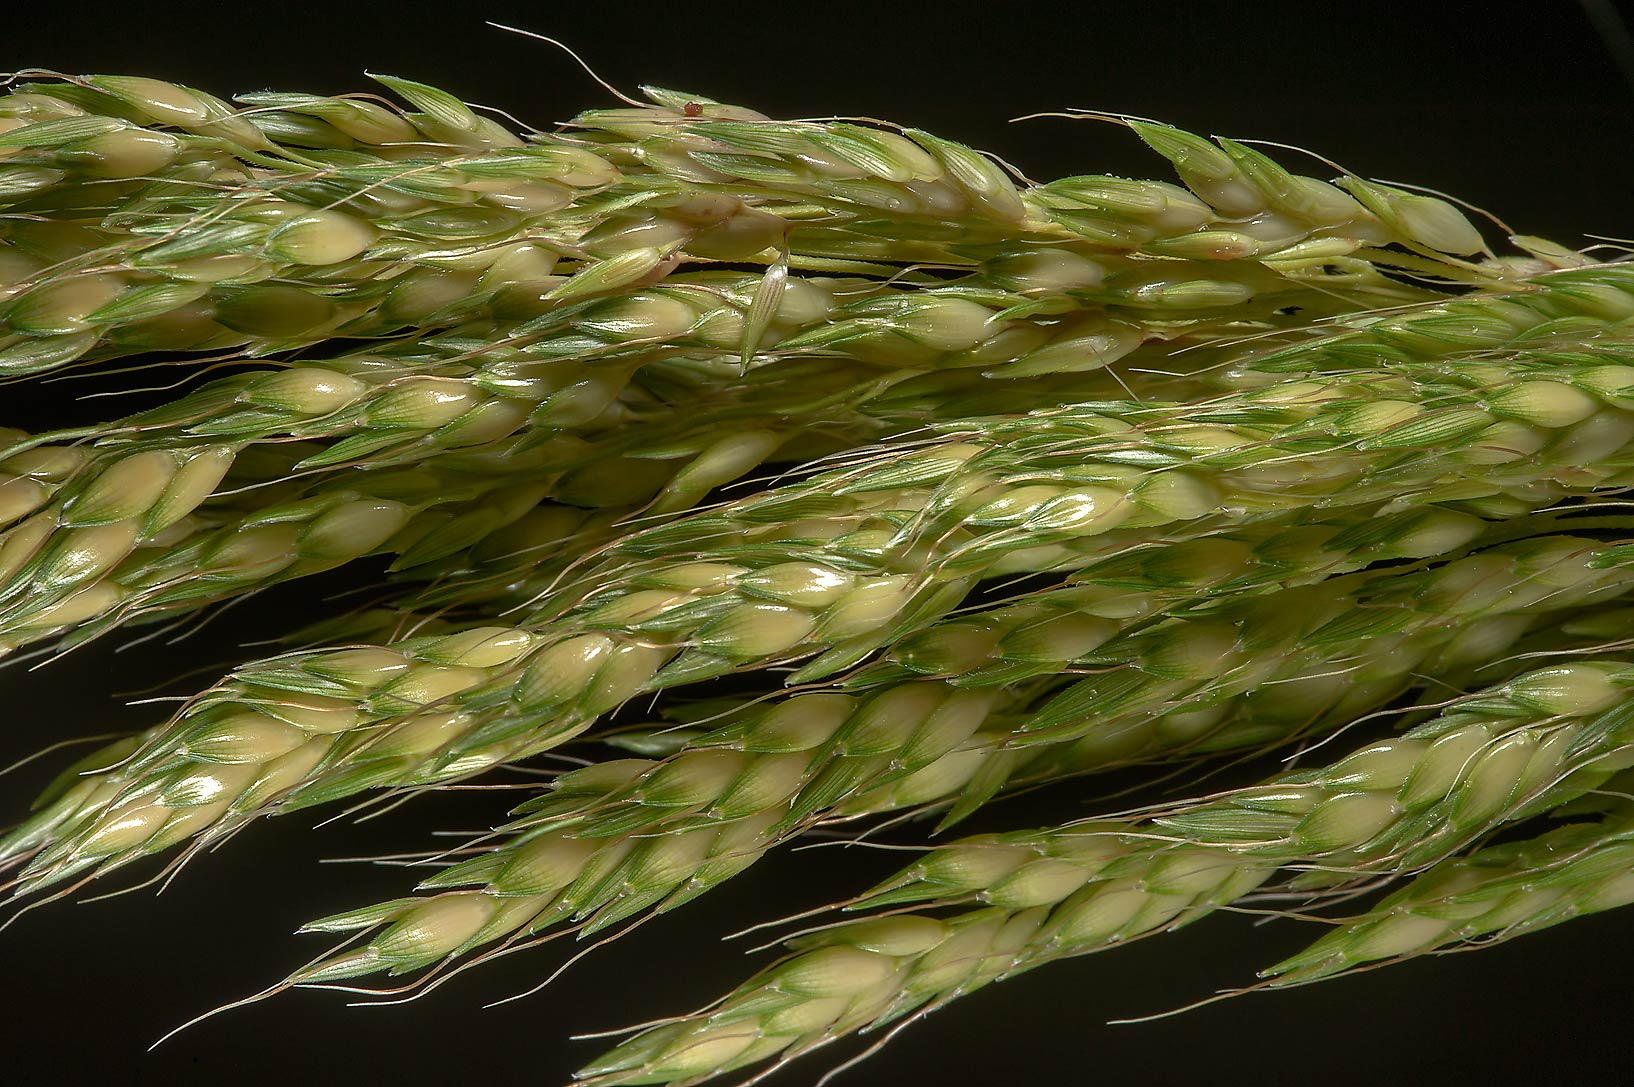 Close up of seeds of Johnson grass (Sorghum...Irkaya) Farms. South-western Qatar